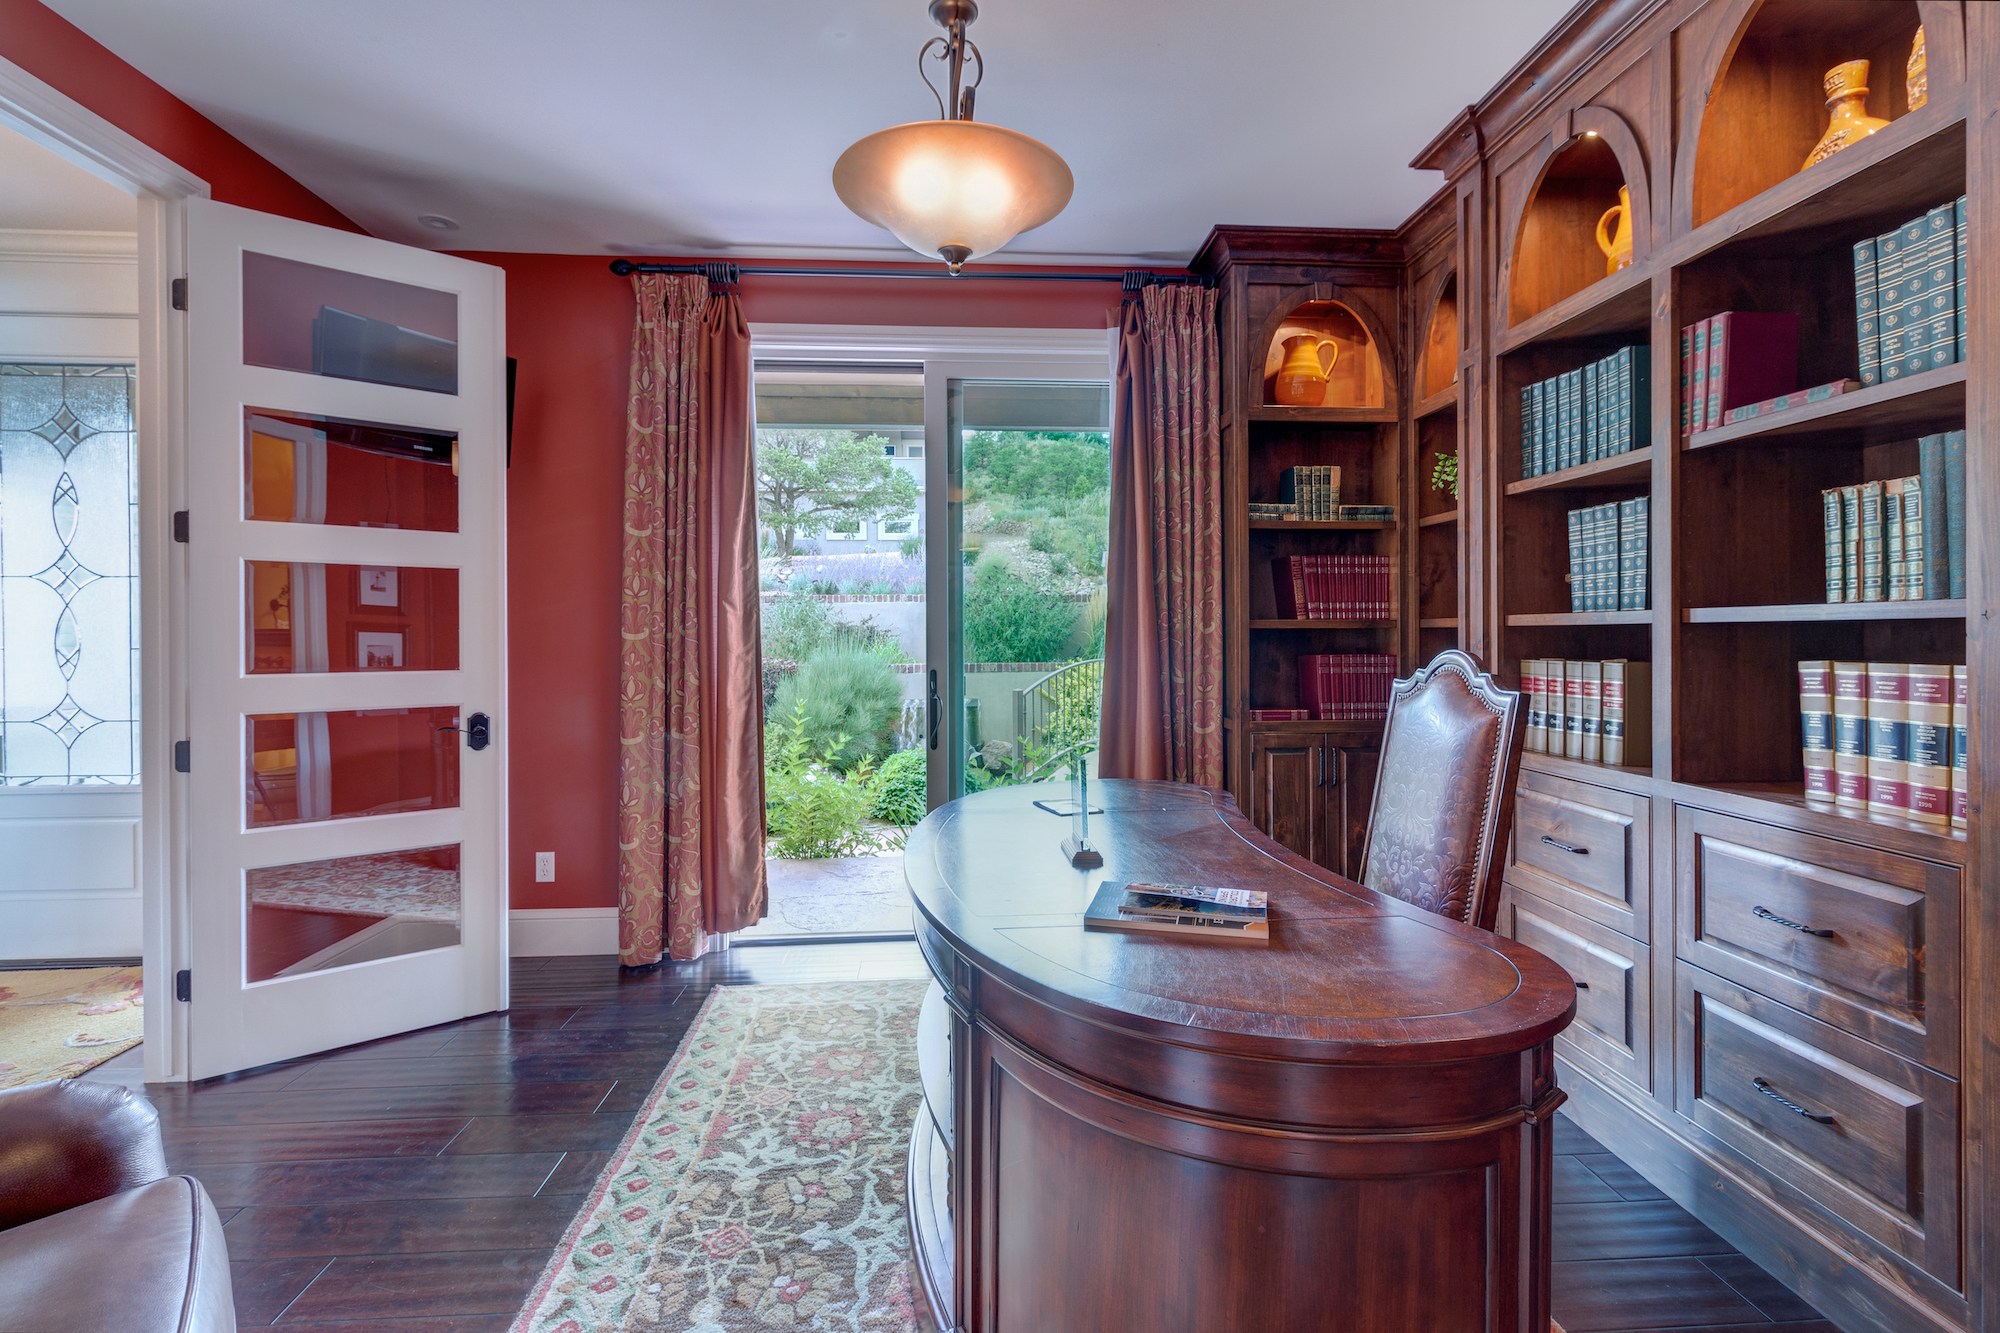 017-Office with bookcases and slider that opens to stream and water feature.jpg